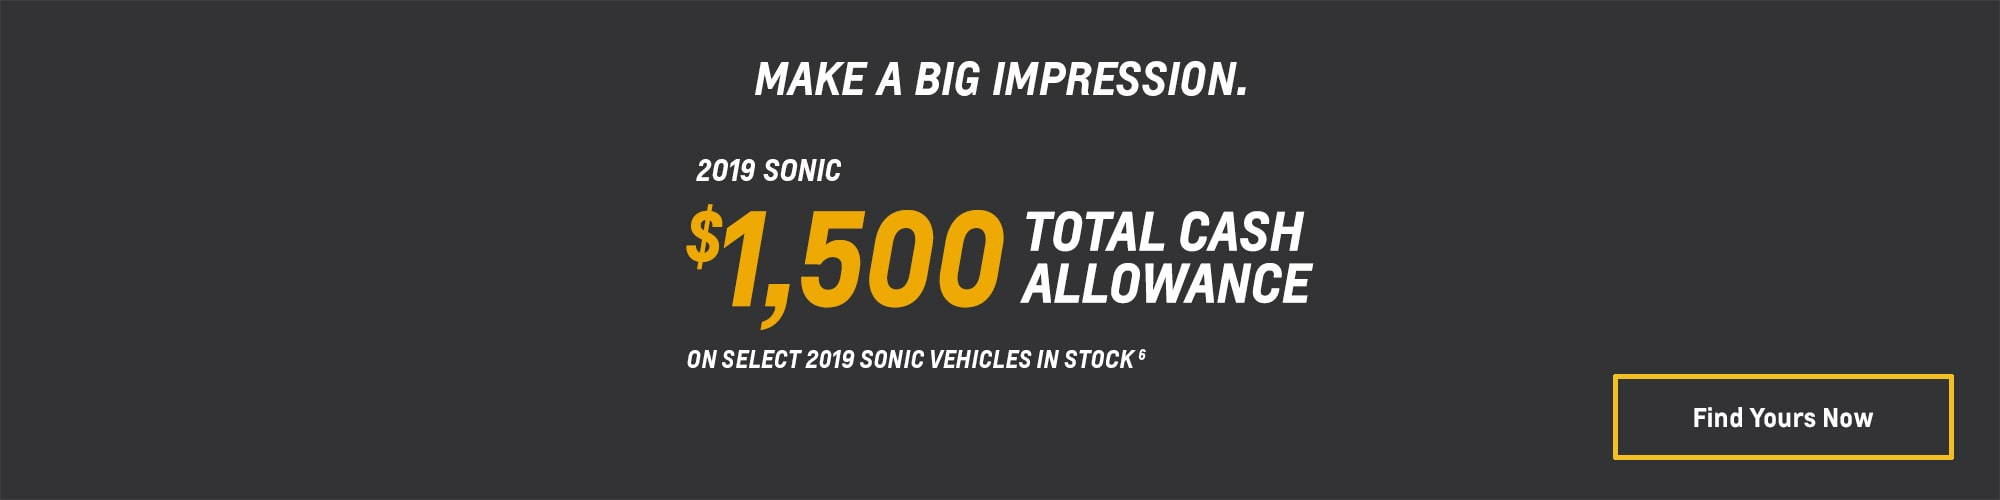 2019 Sonic Small Car Deals and Offers